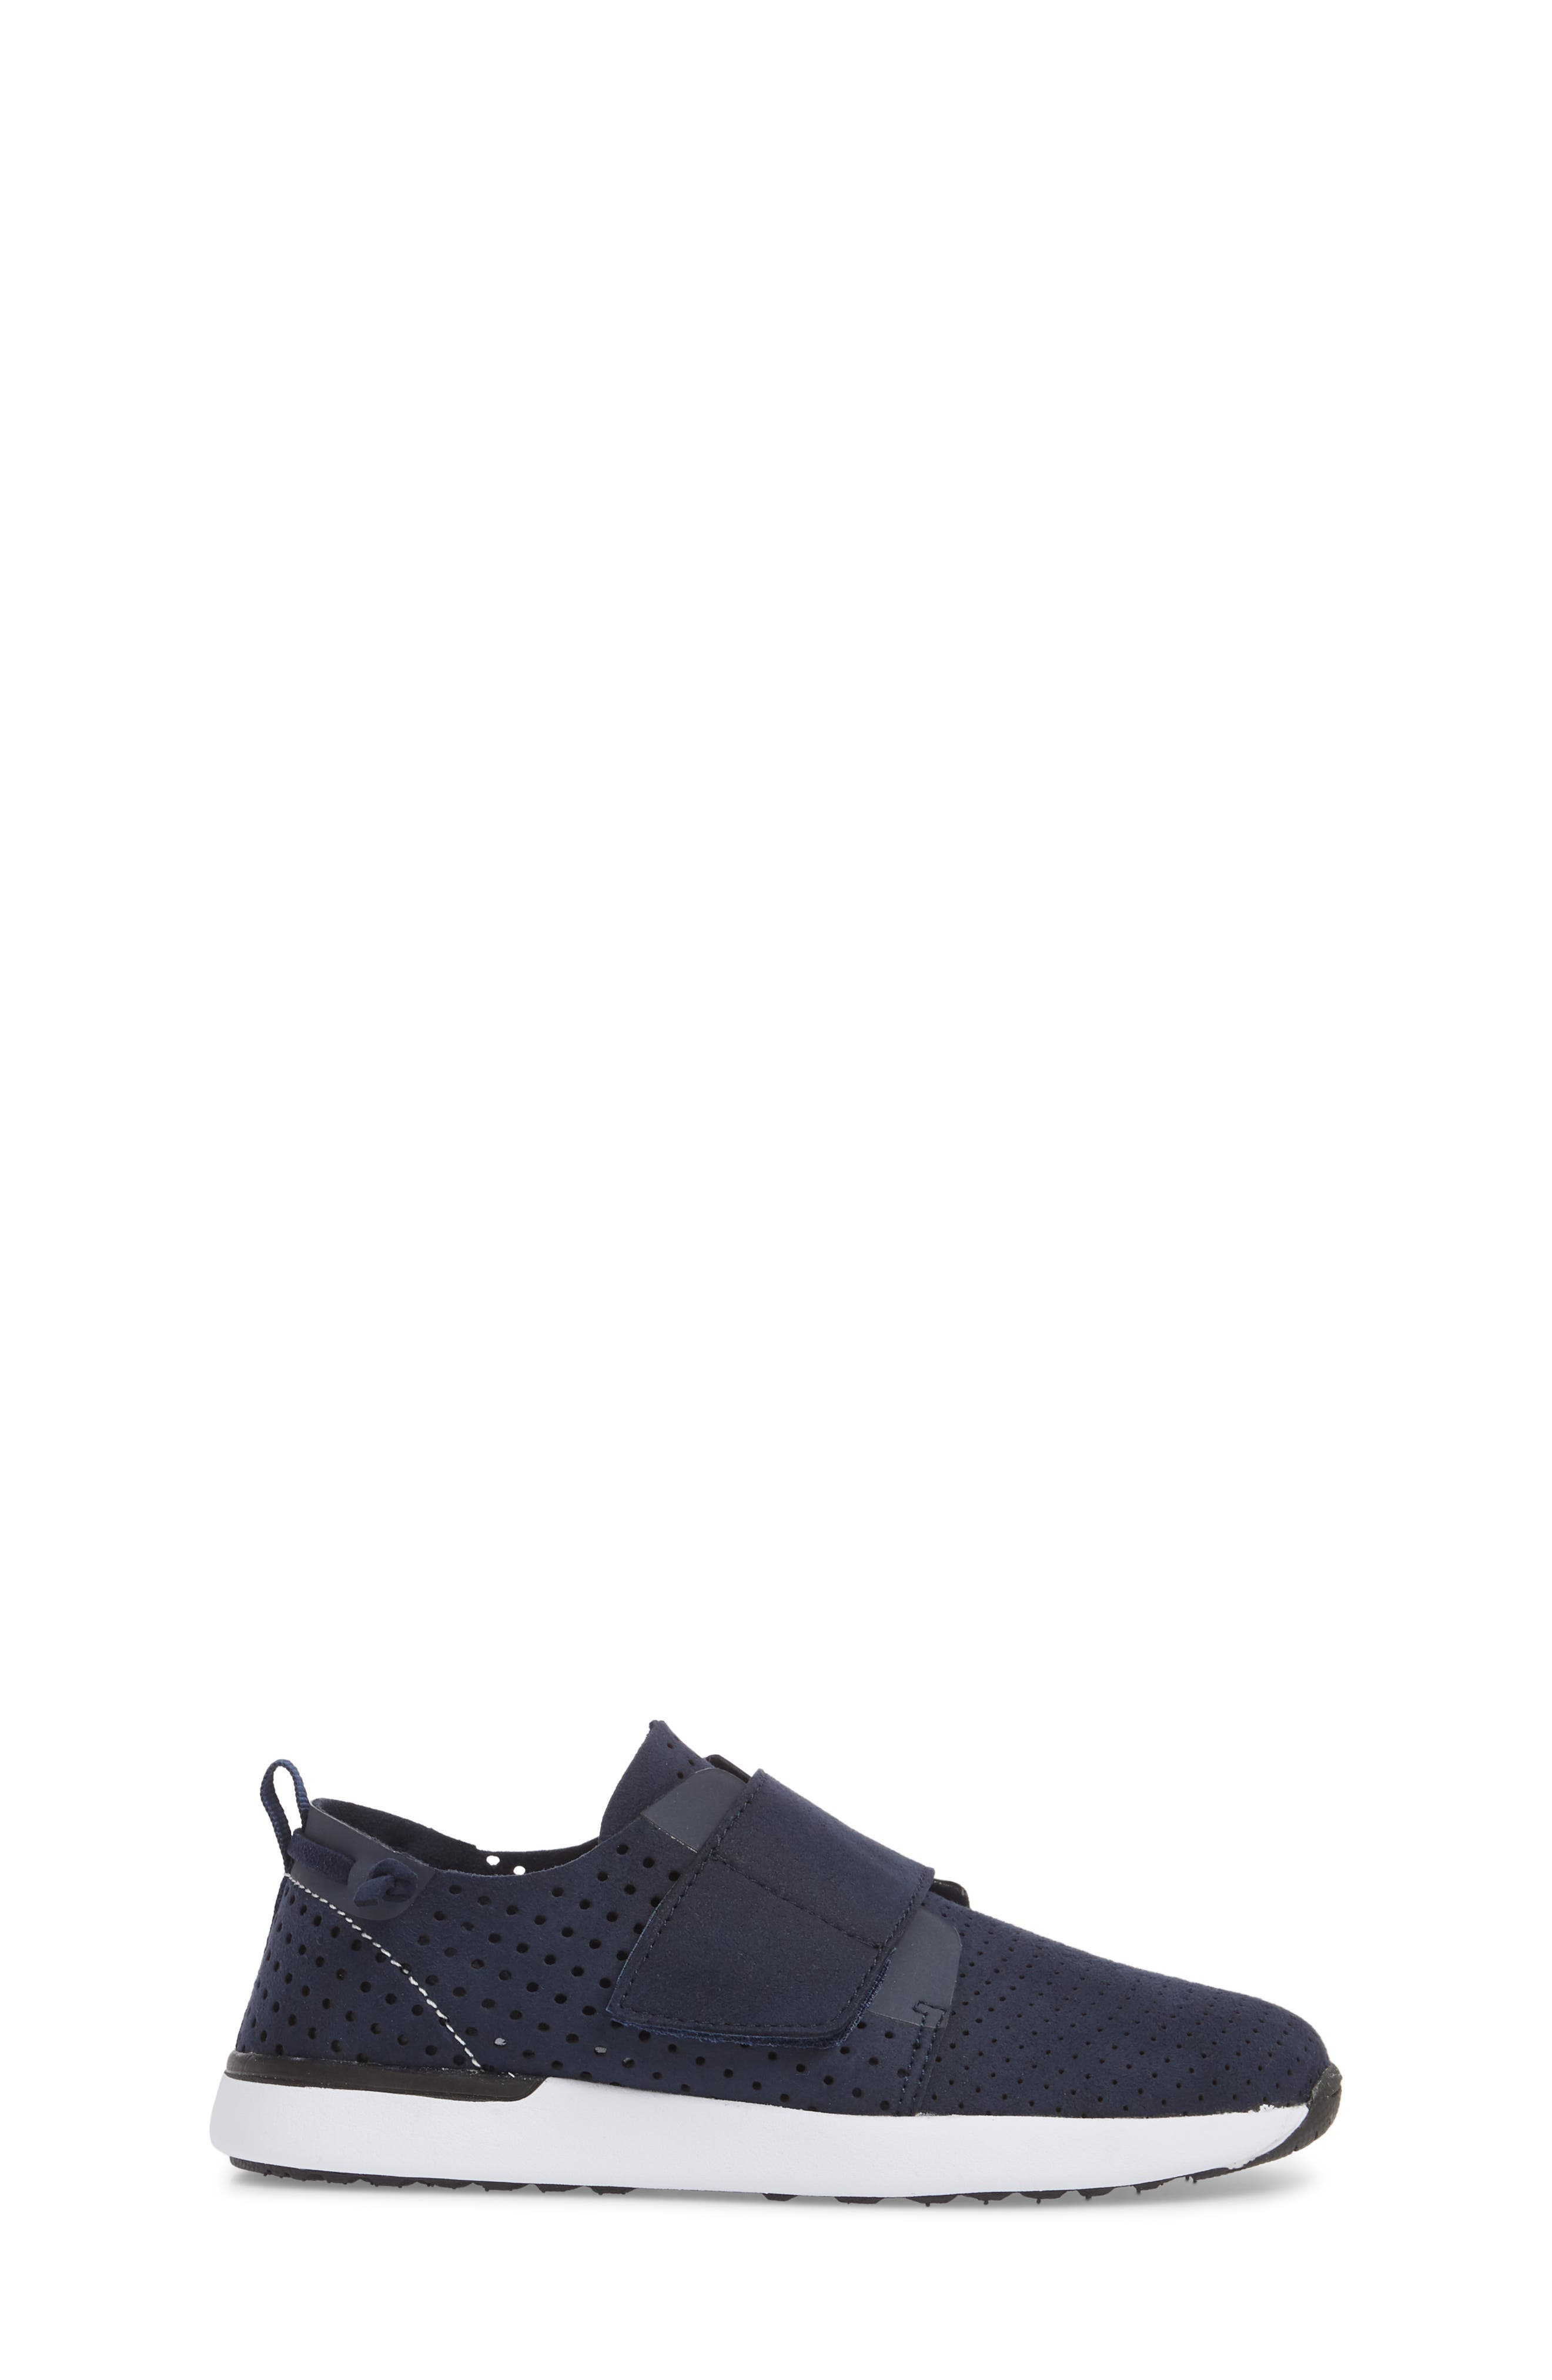 Brixxnv Perforated Sneaker,                             Alternate thumbnail 3, color,                             NAVY